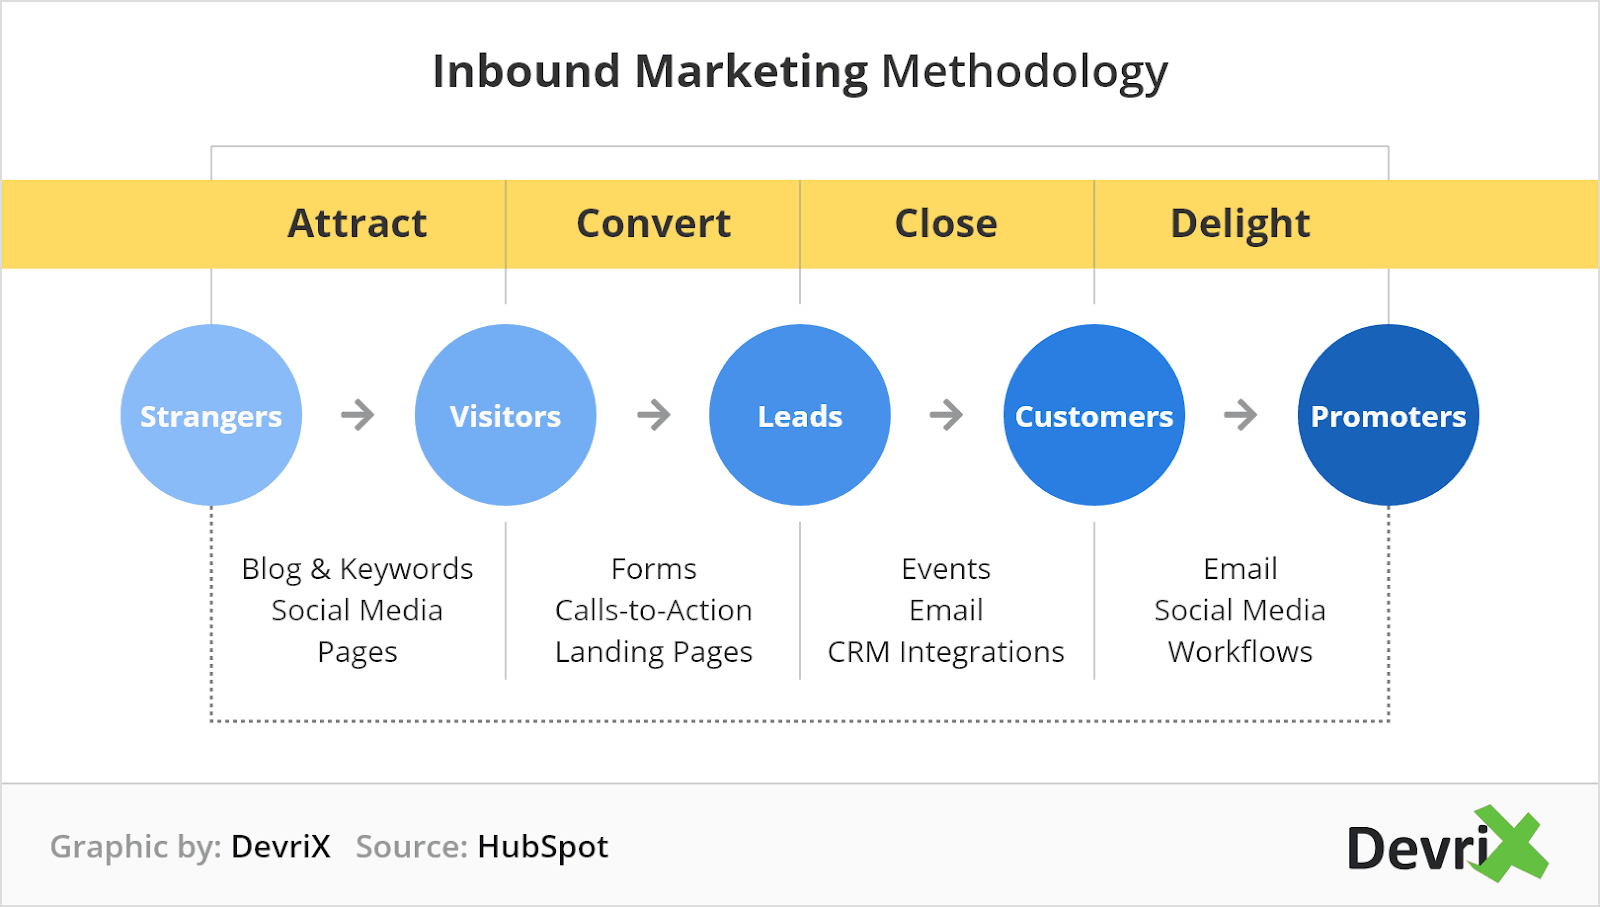 How Can You Learn from Inbound Marketing Tool like HubSpot